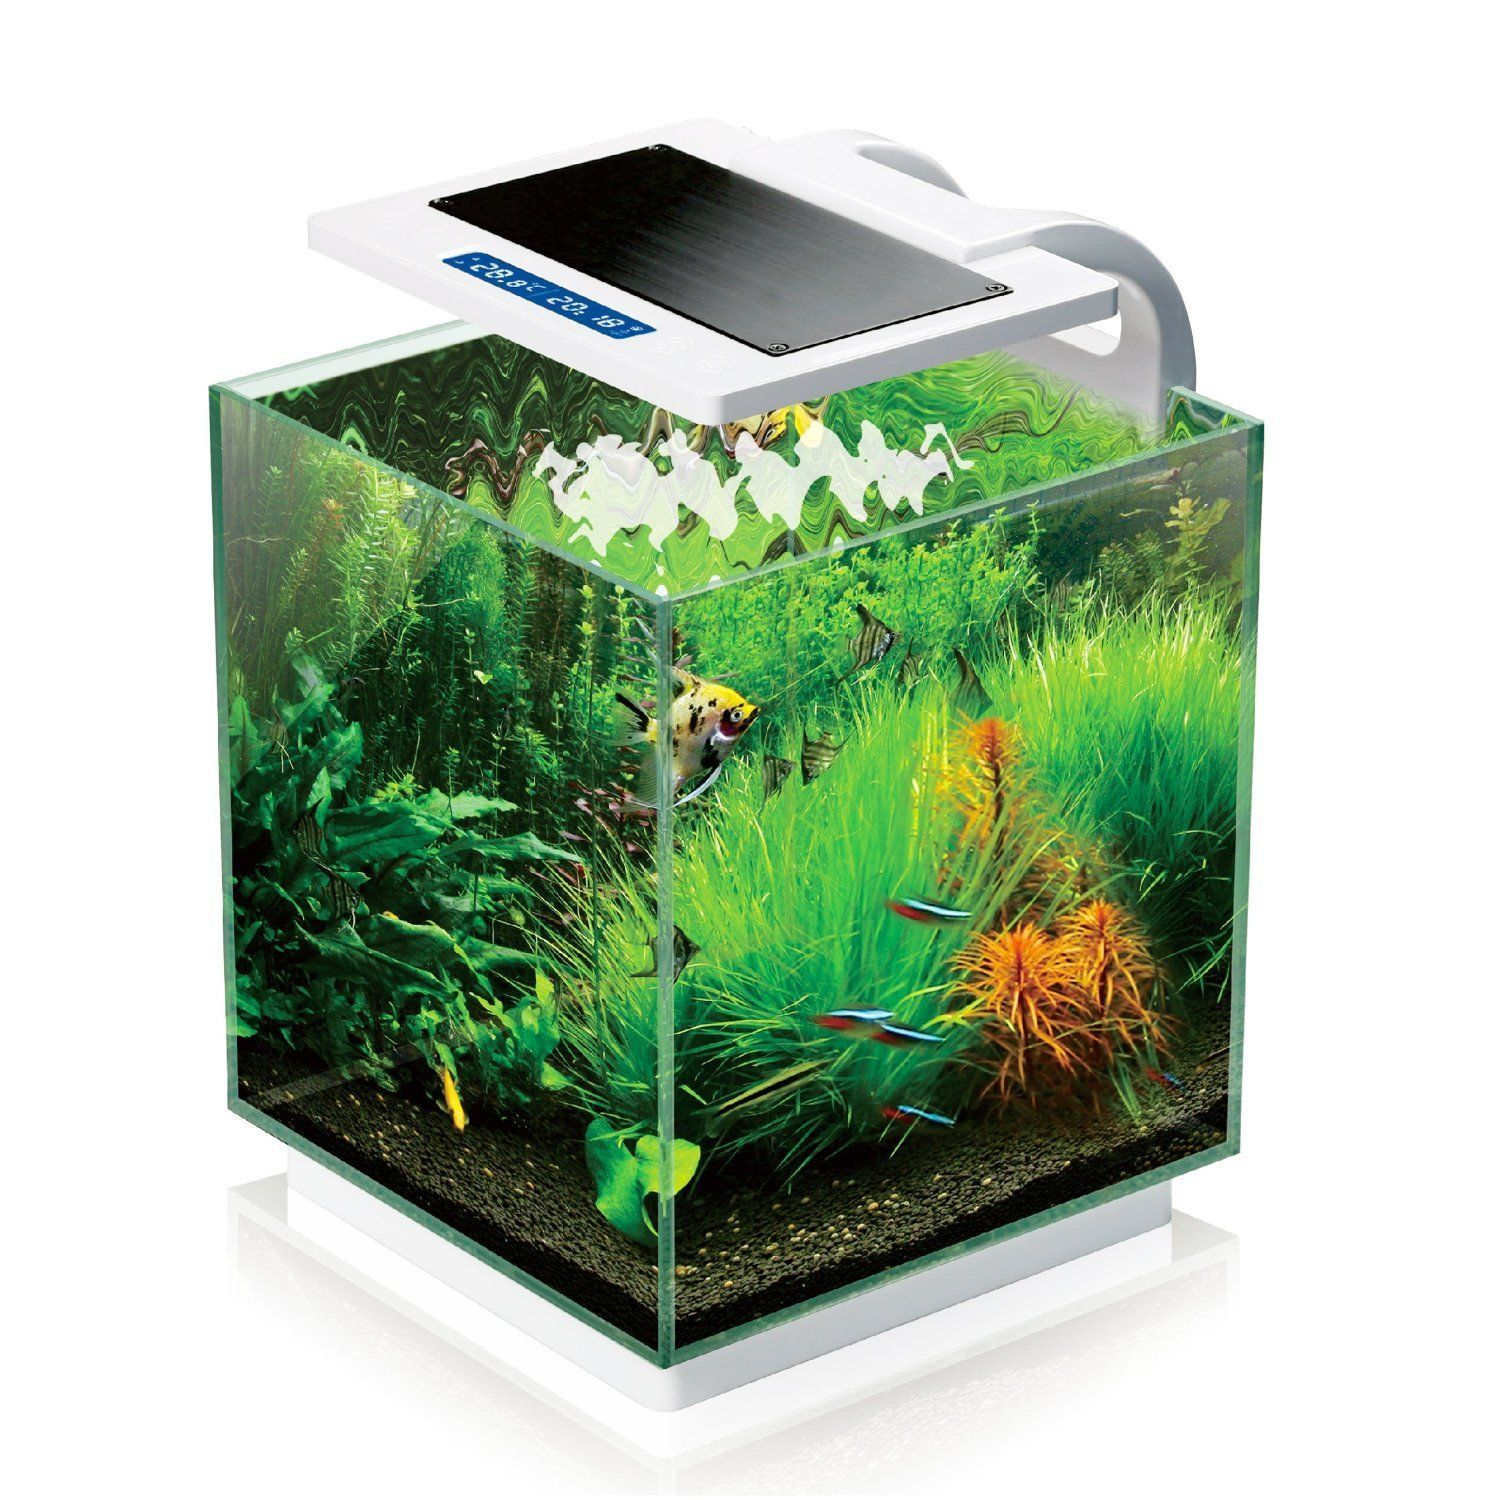 Aquarium glass fish tank 4 gallons 10 x 10 x 10 led light for 10 gallon fish tanks